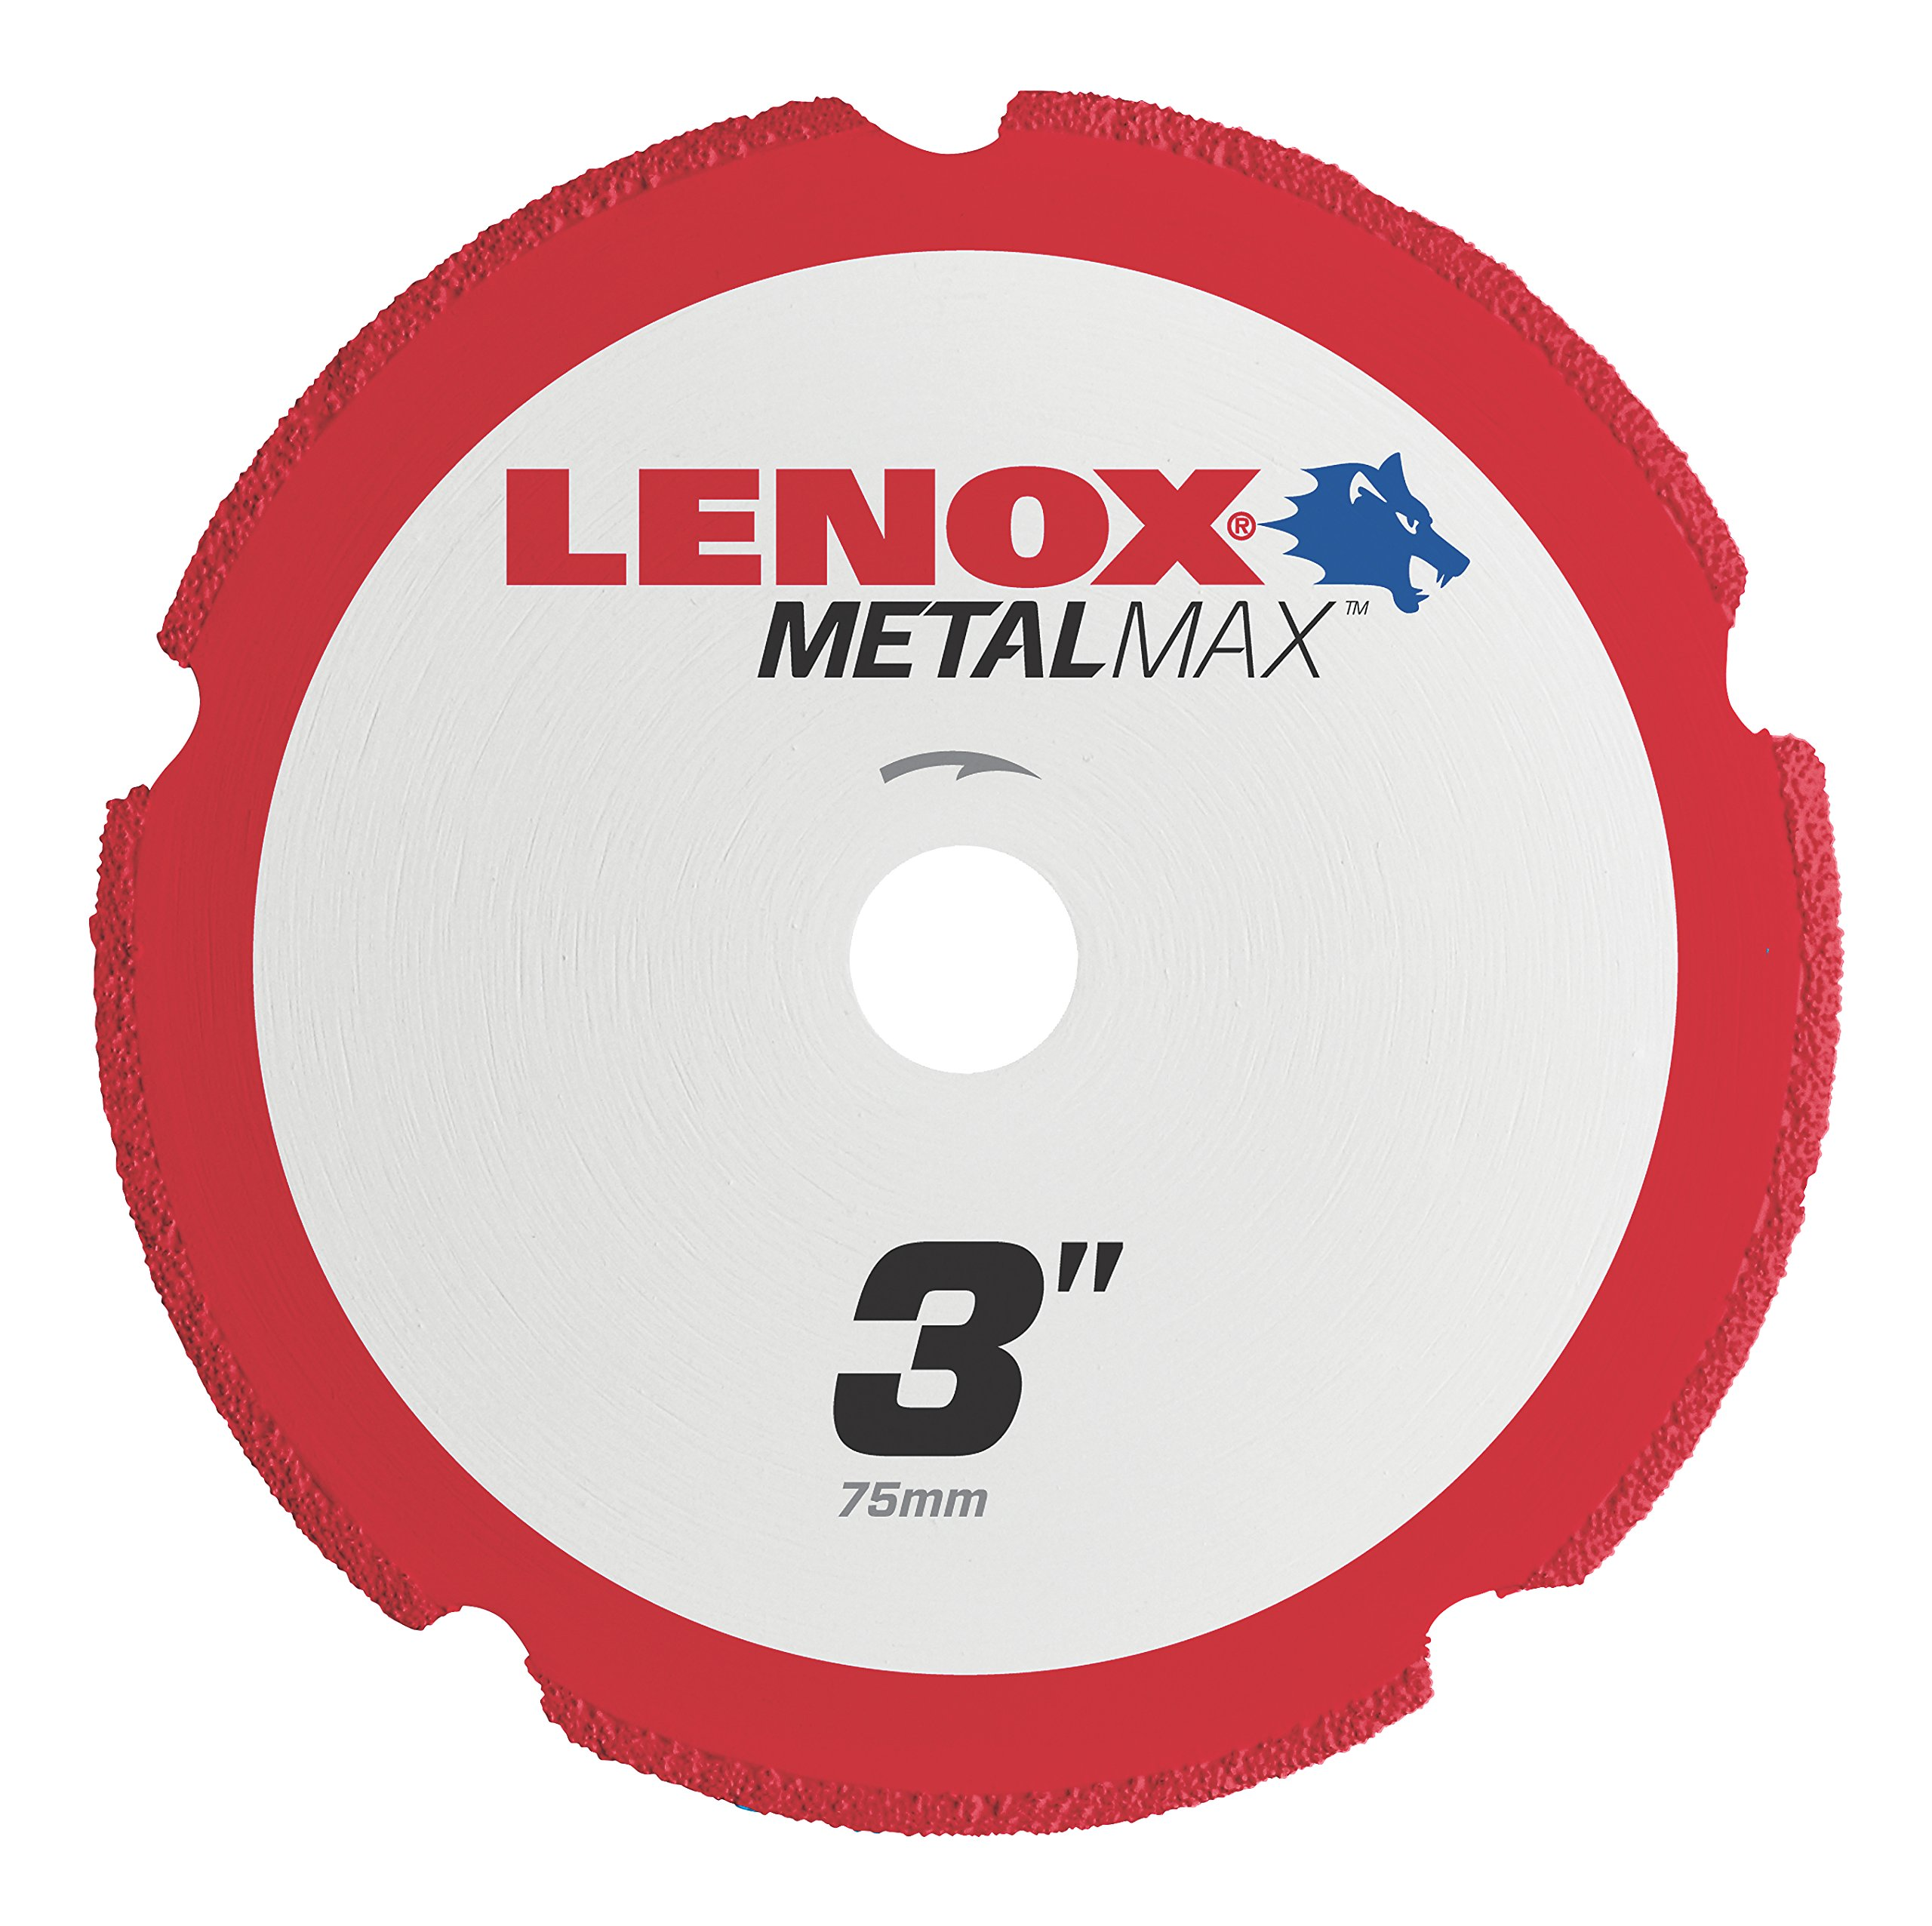 Lenox Tools 1972918 METALMAX Diamond Edge Cutoff Wheel, 3'' x 3/8''